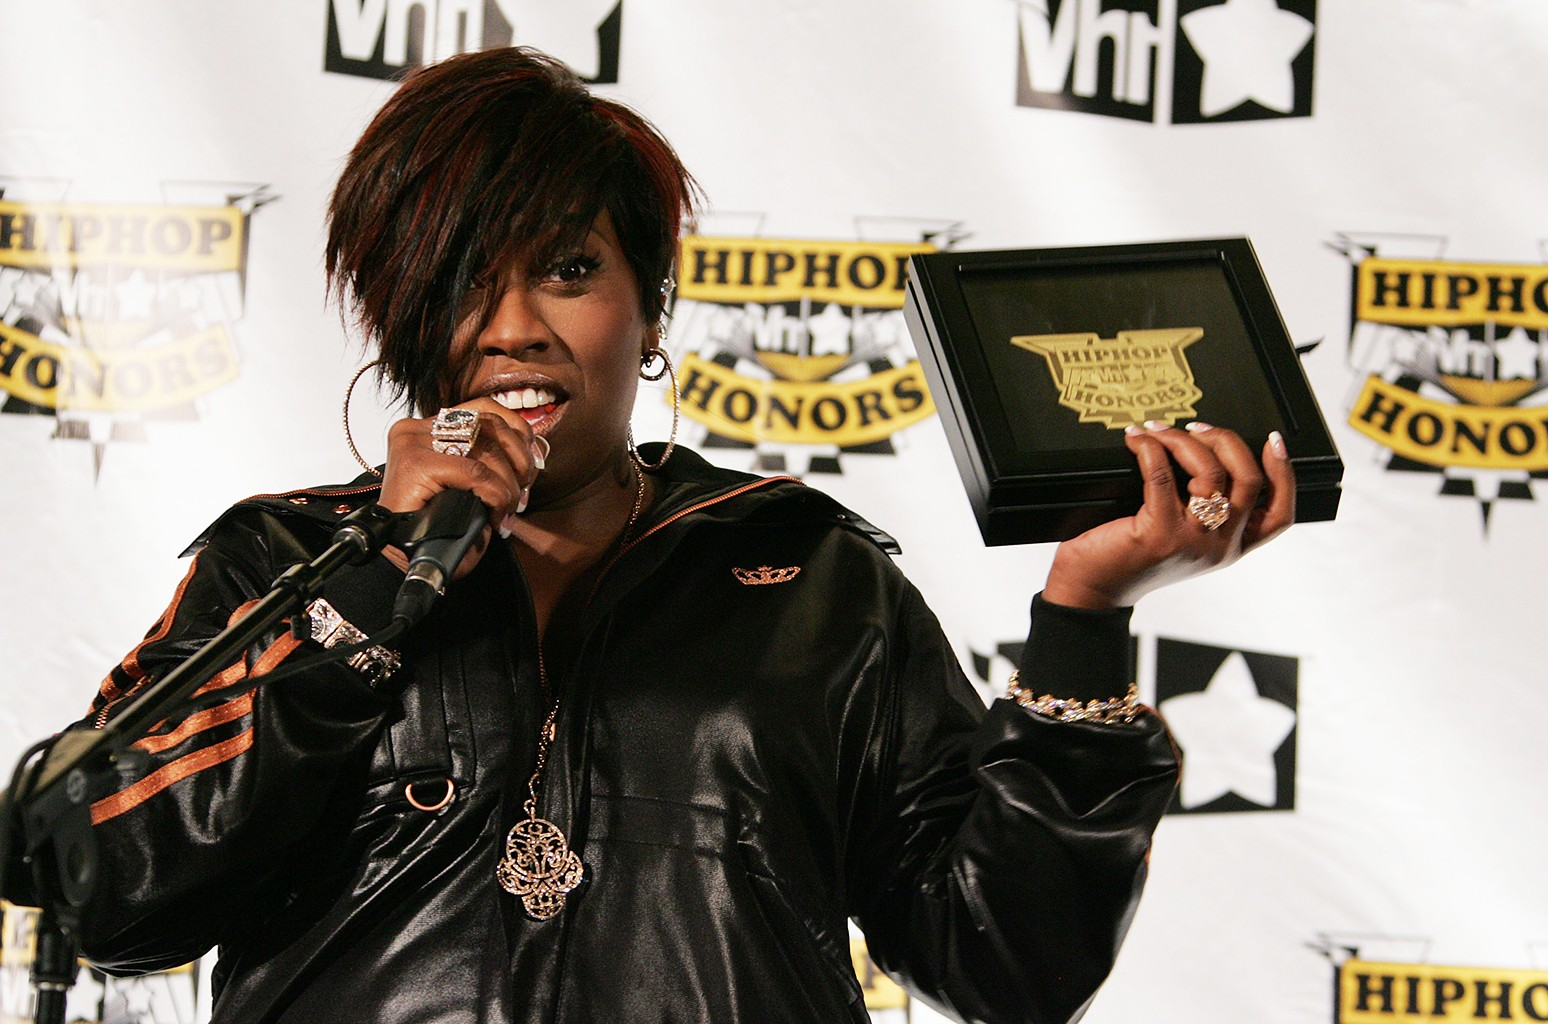 Missy Elliot at the 4th Annual VH1 Hip Hop Honors